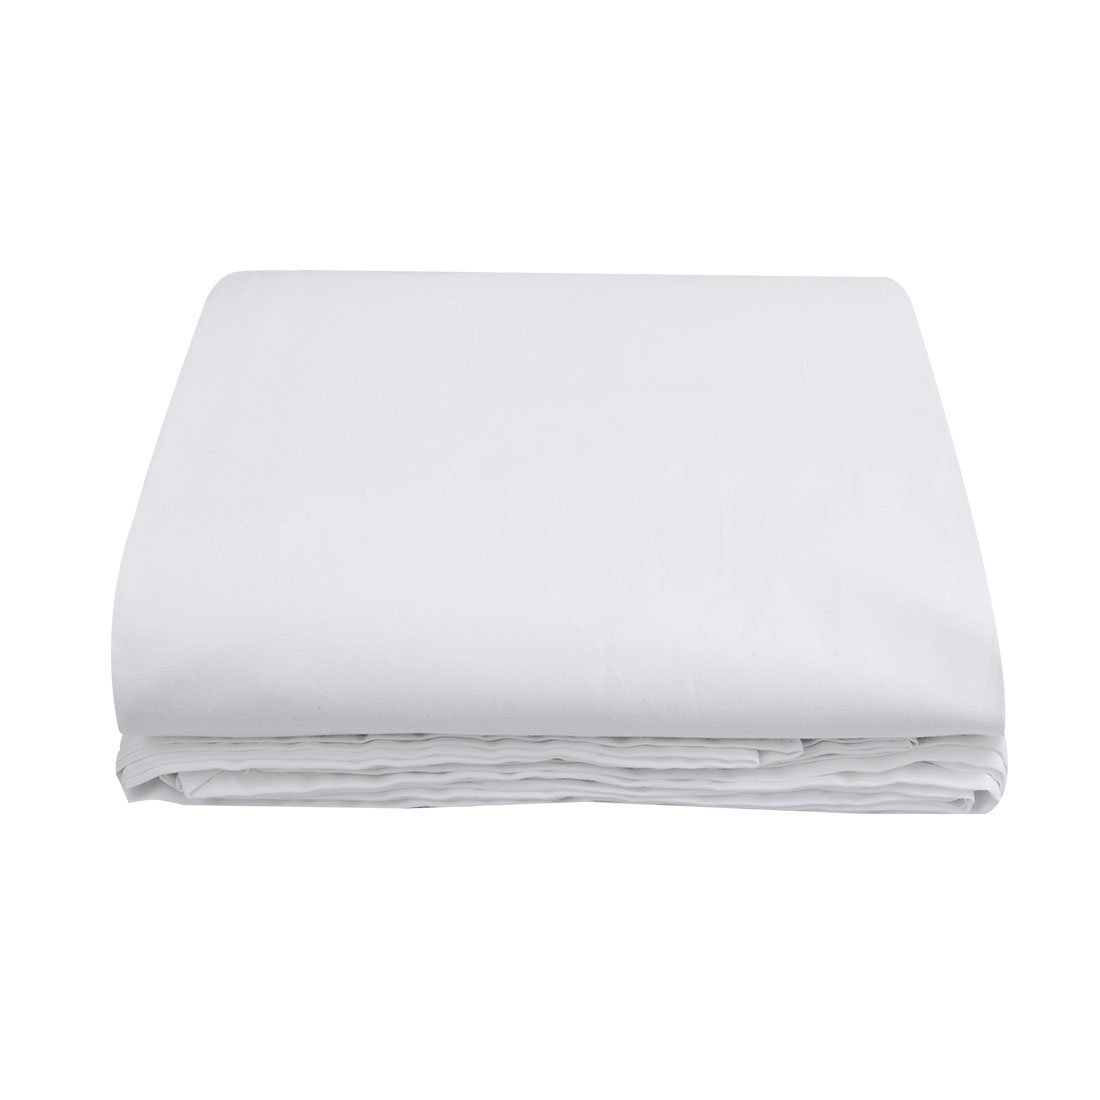 uxcell Twin Size Flat Top Bed Sheet 300 Thread Count Egyptian Cotton Fitted Sheet Sold Separately for Set Cool Feeling-100% Satisfaction Guarantee (1-Piece, Twin, White)(96 x 66 Inch)